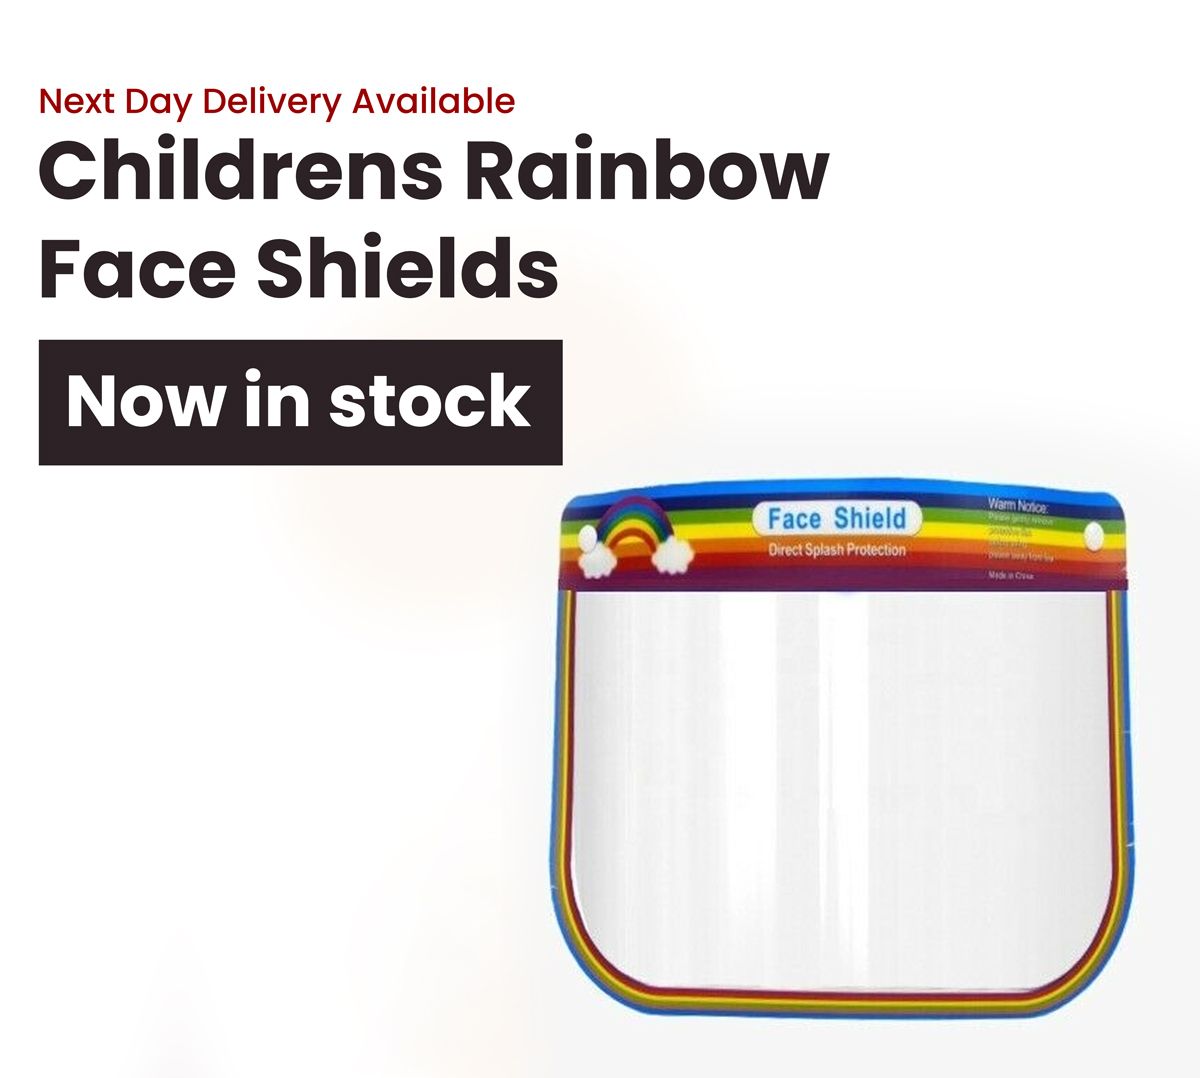 Childrens Rainbow Face Shields